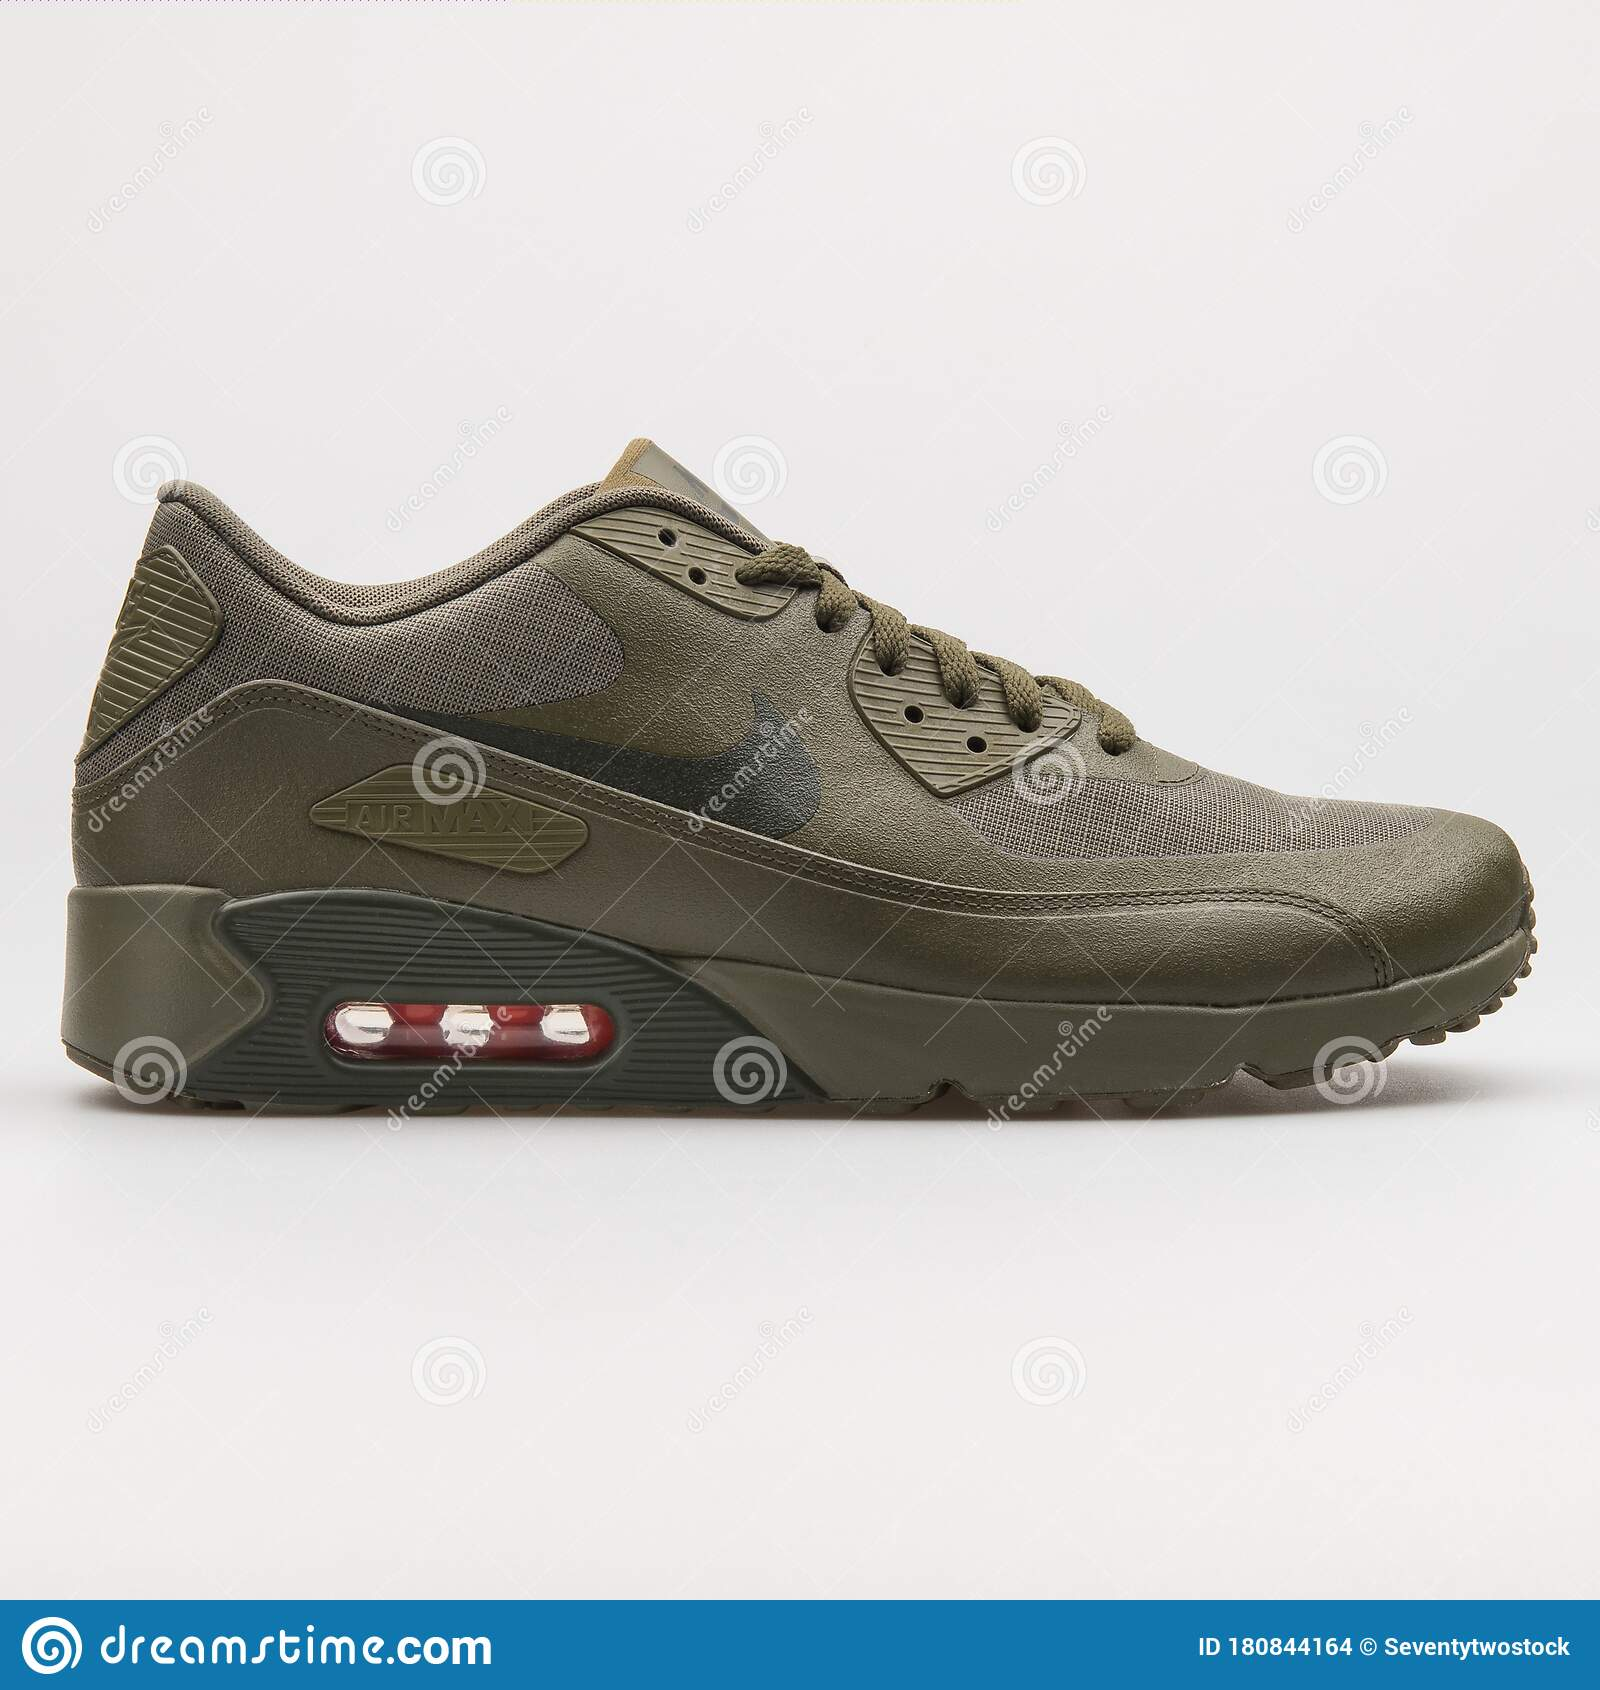 Diplomático Oponerse a Increíble  Nike Air Max 90 Ultra 2.0 WE Olive Green Sneaker Editorial Stock Image -  Image of accessories, running: 180844164